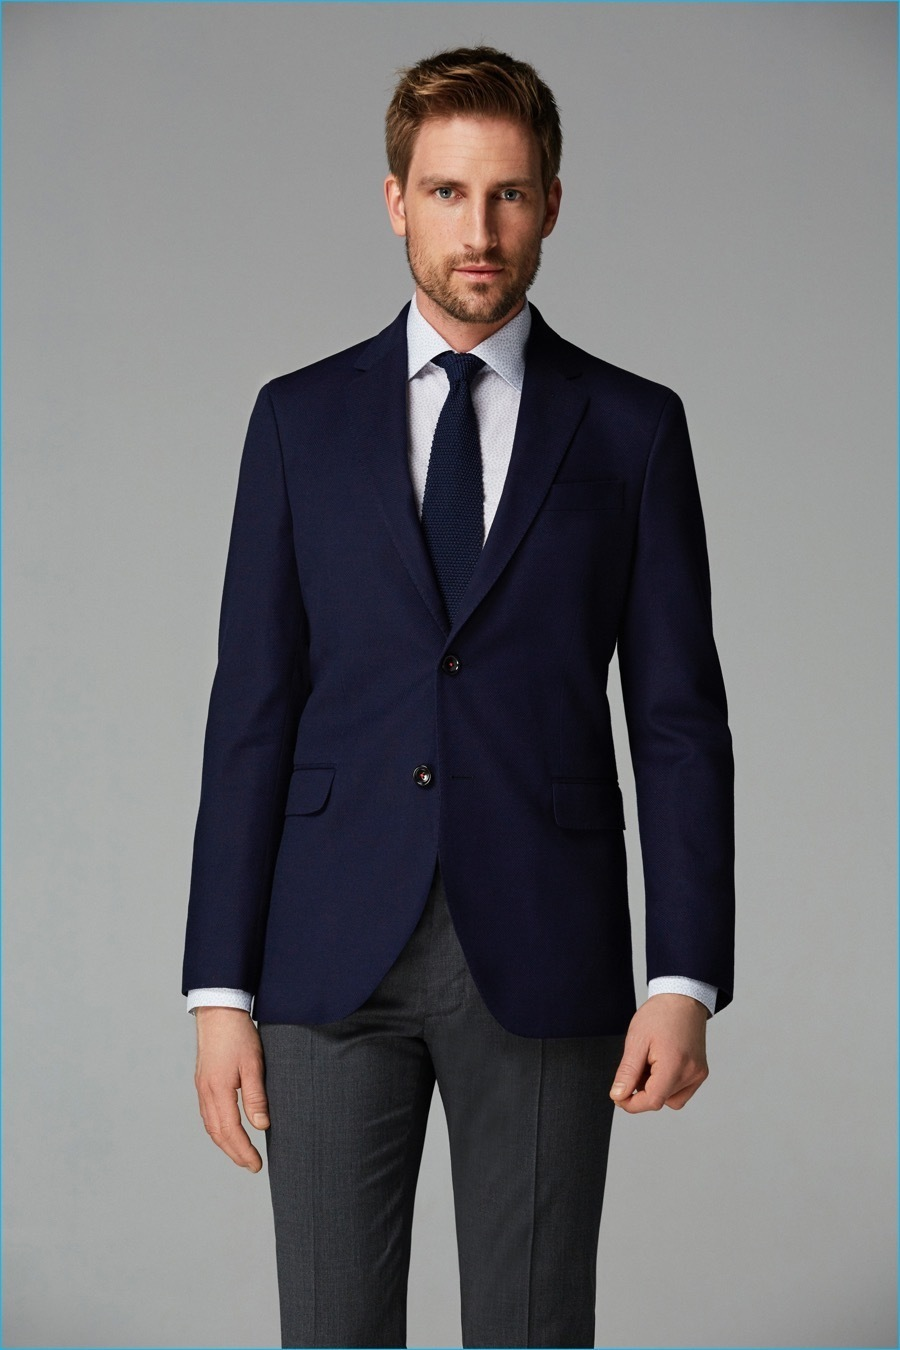 In short, the best blue blazer is Officine Générale's Jacket. It's like a Swiss army knife for your closet, elevating weekend threads into office-worthy looks and serving as .